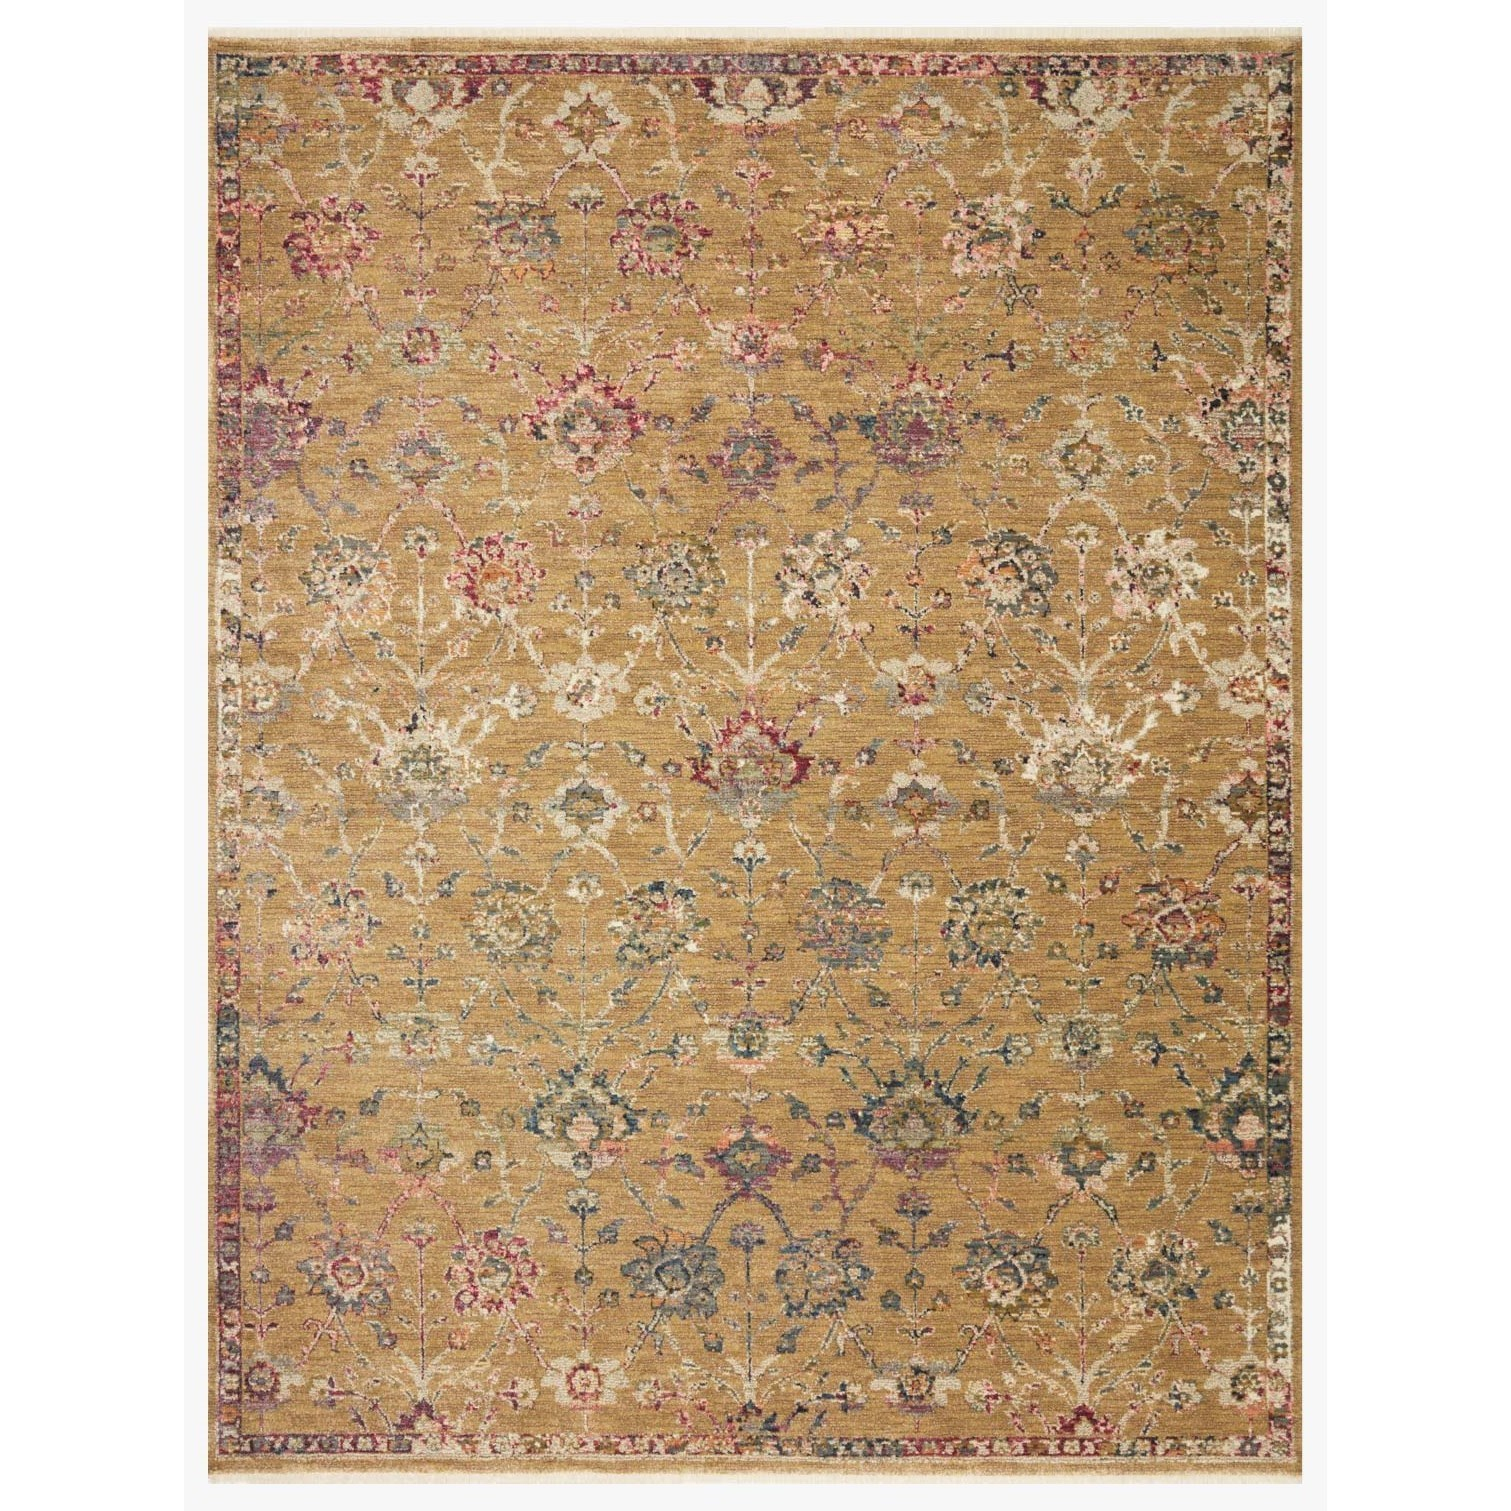 "Giada 9'0"" x 12'0"" Gold / Multi Rug by Loloi Rugs at Virginia Furniture Market"